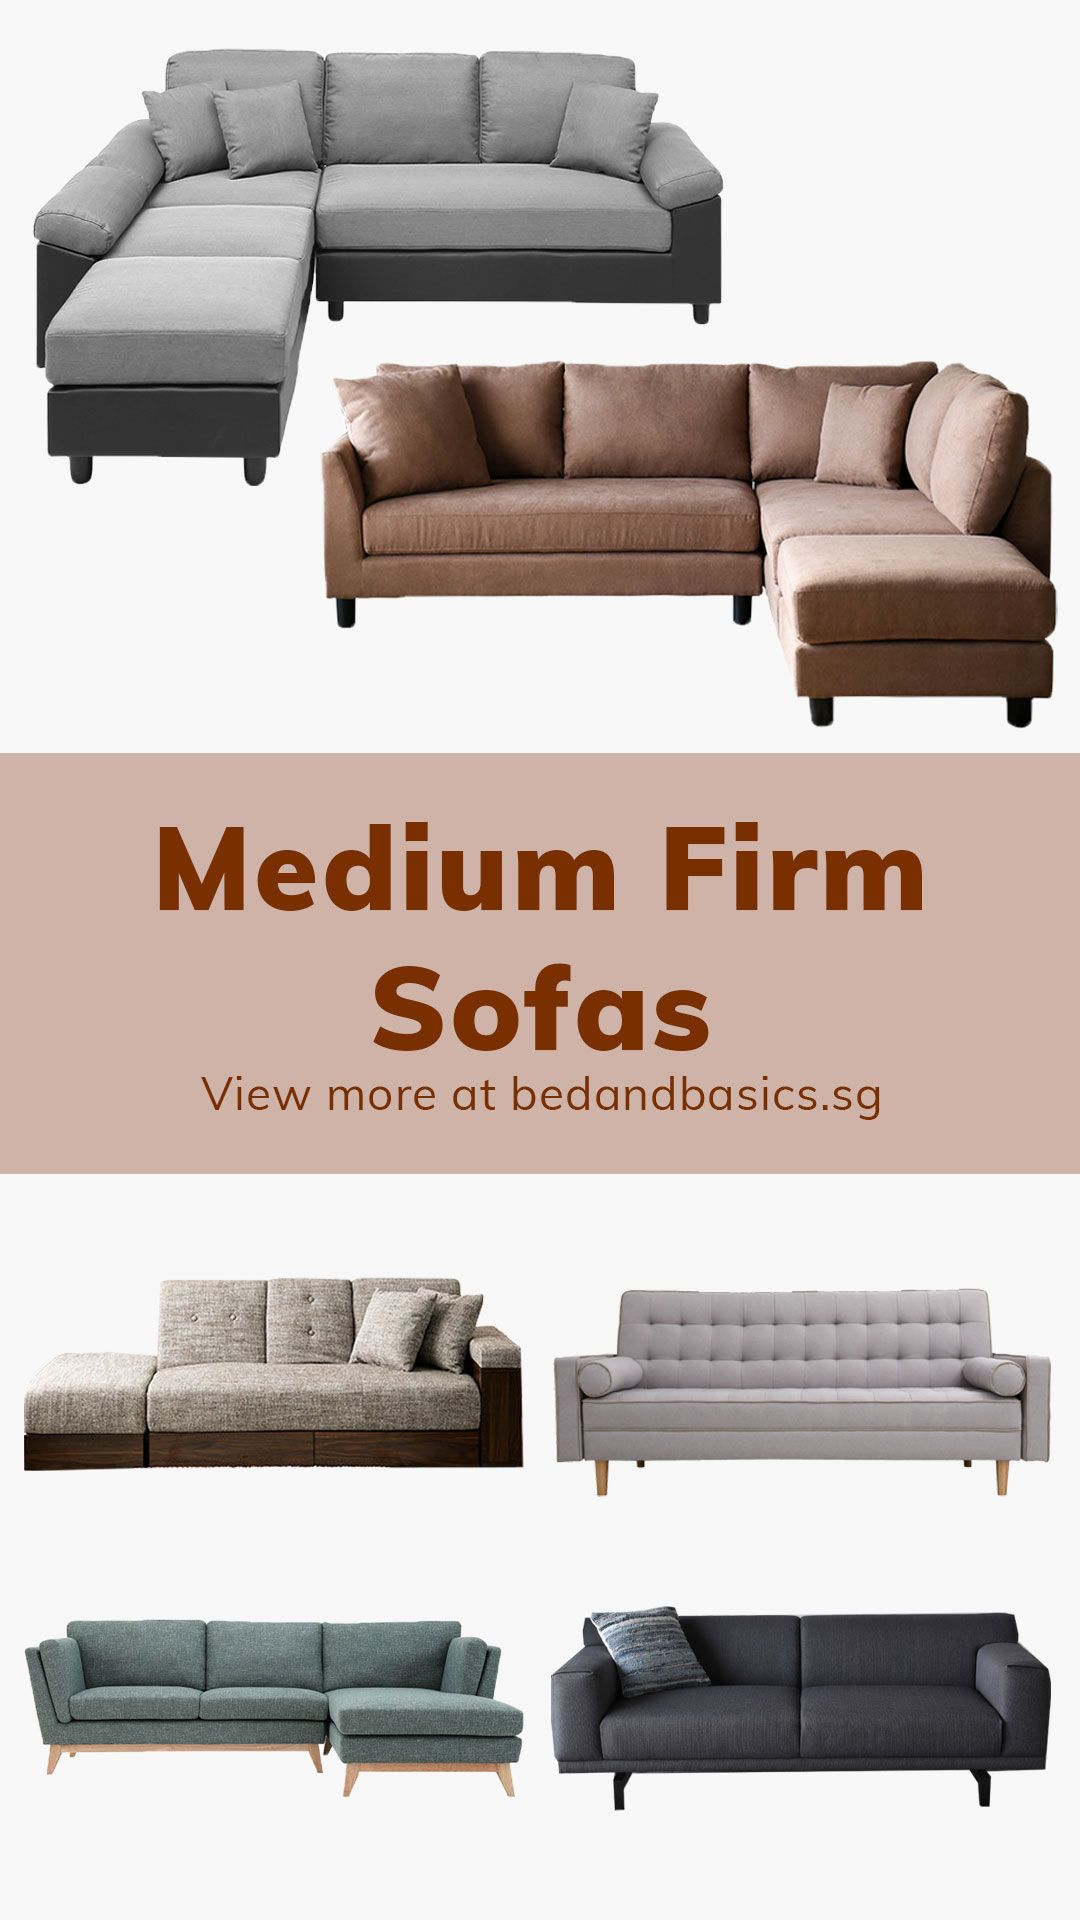 Medium Firm Sofas In 2020 Living Room Furniture Online Sofa Bed With Storage Buy Sofa